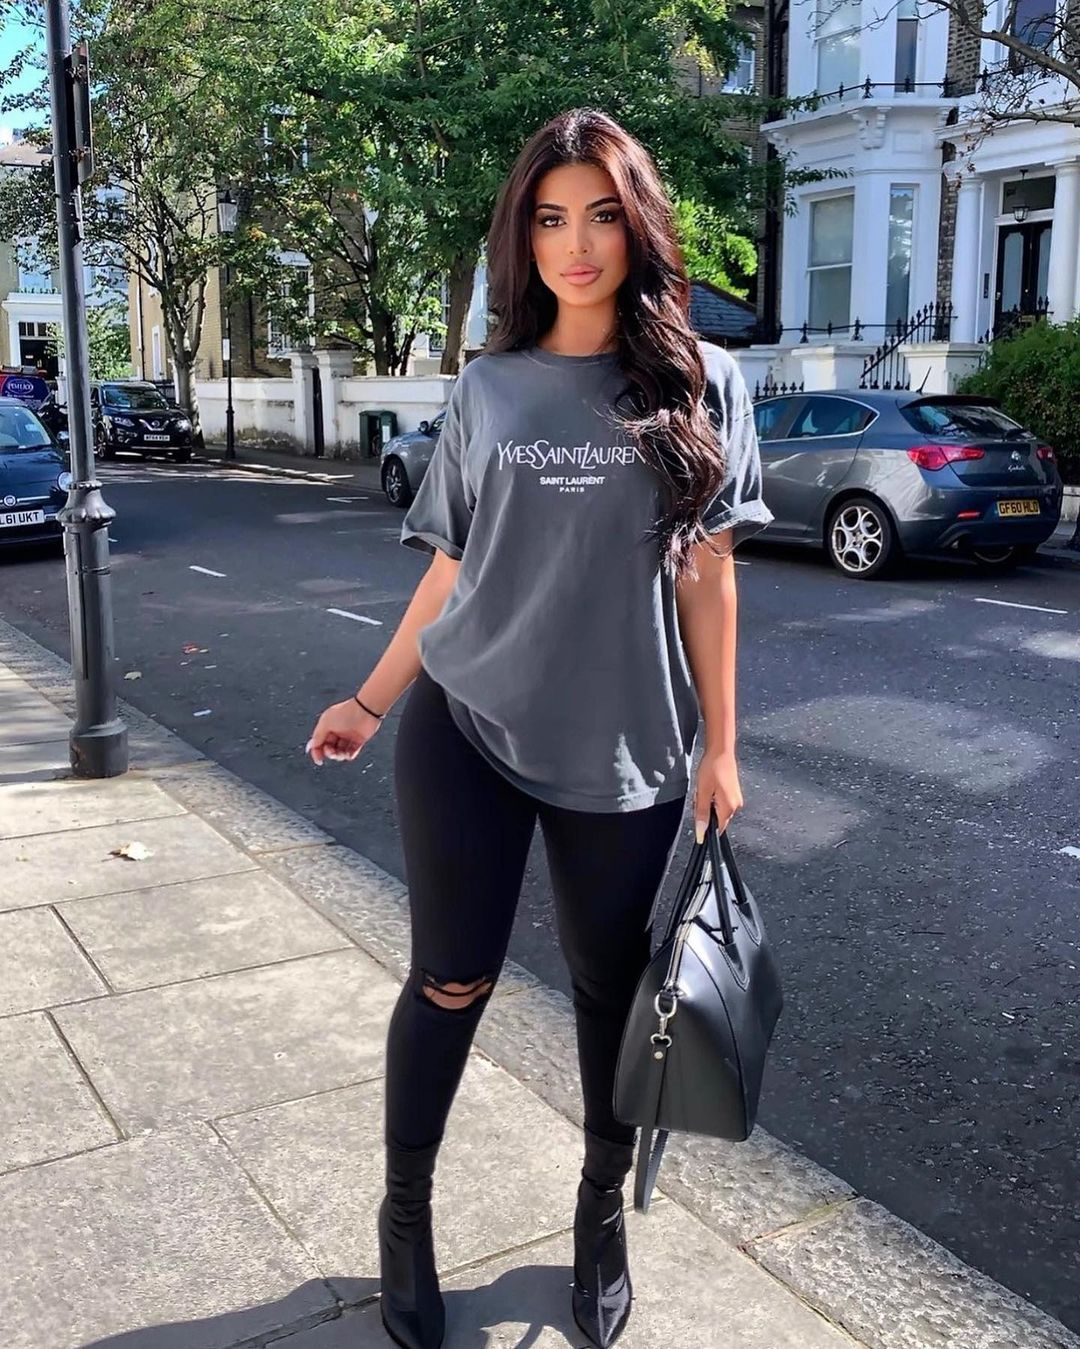 Sofia-londonn-Wallpapers-Insta-Fit-Bio-2